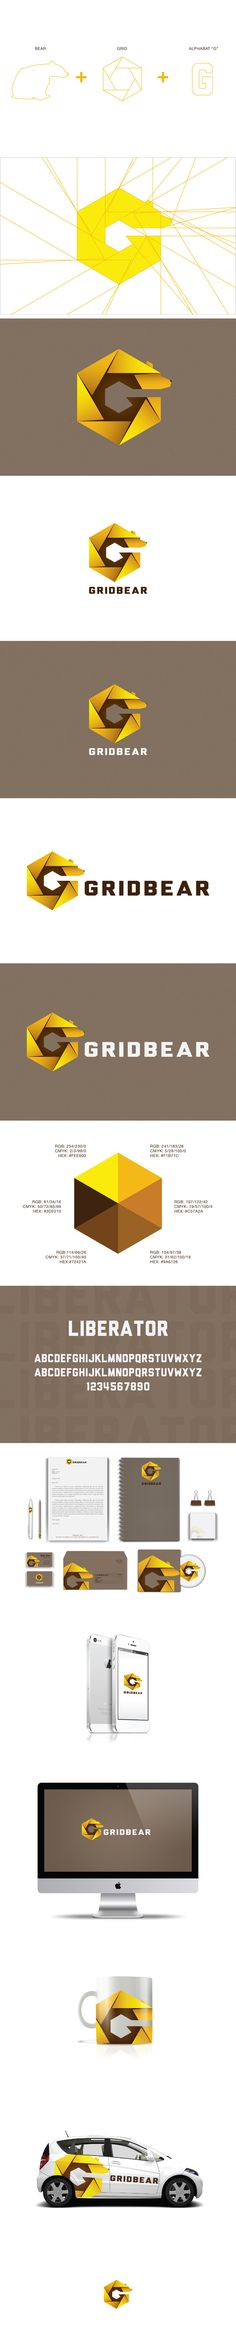 * GridBear Visual Identity by www.BlickeDeeler.de | Visit our website: www.blickedeeler.de/leistungen/corporate-design